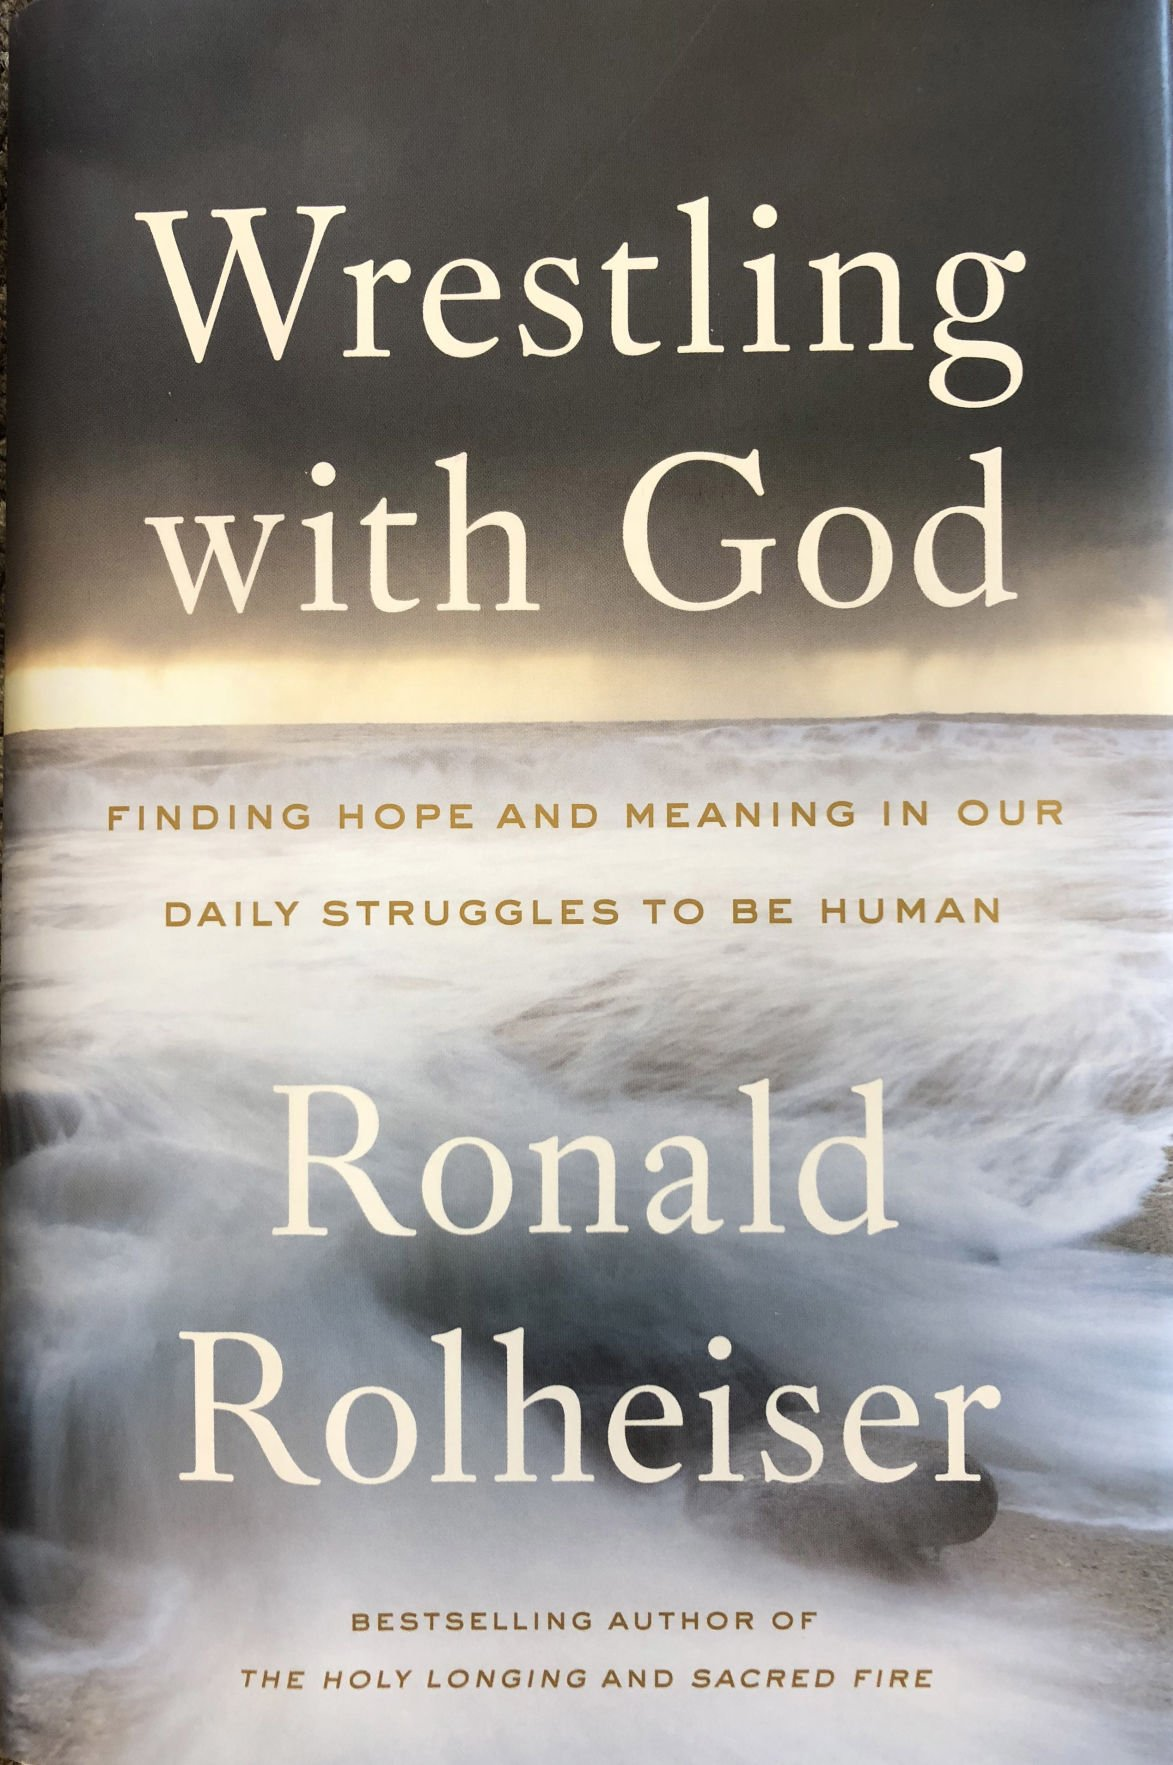 'Wrestling With God'